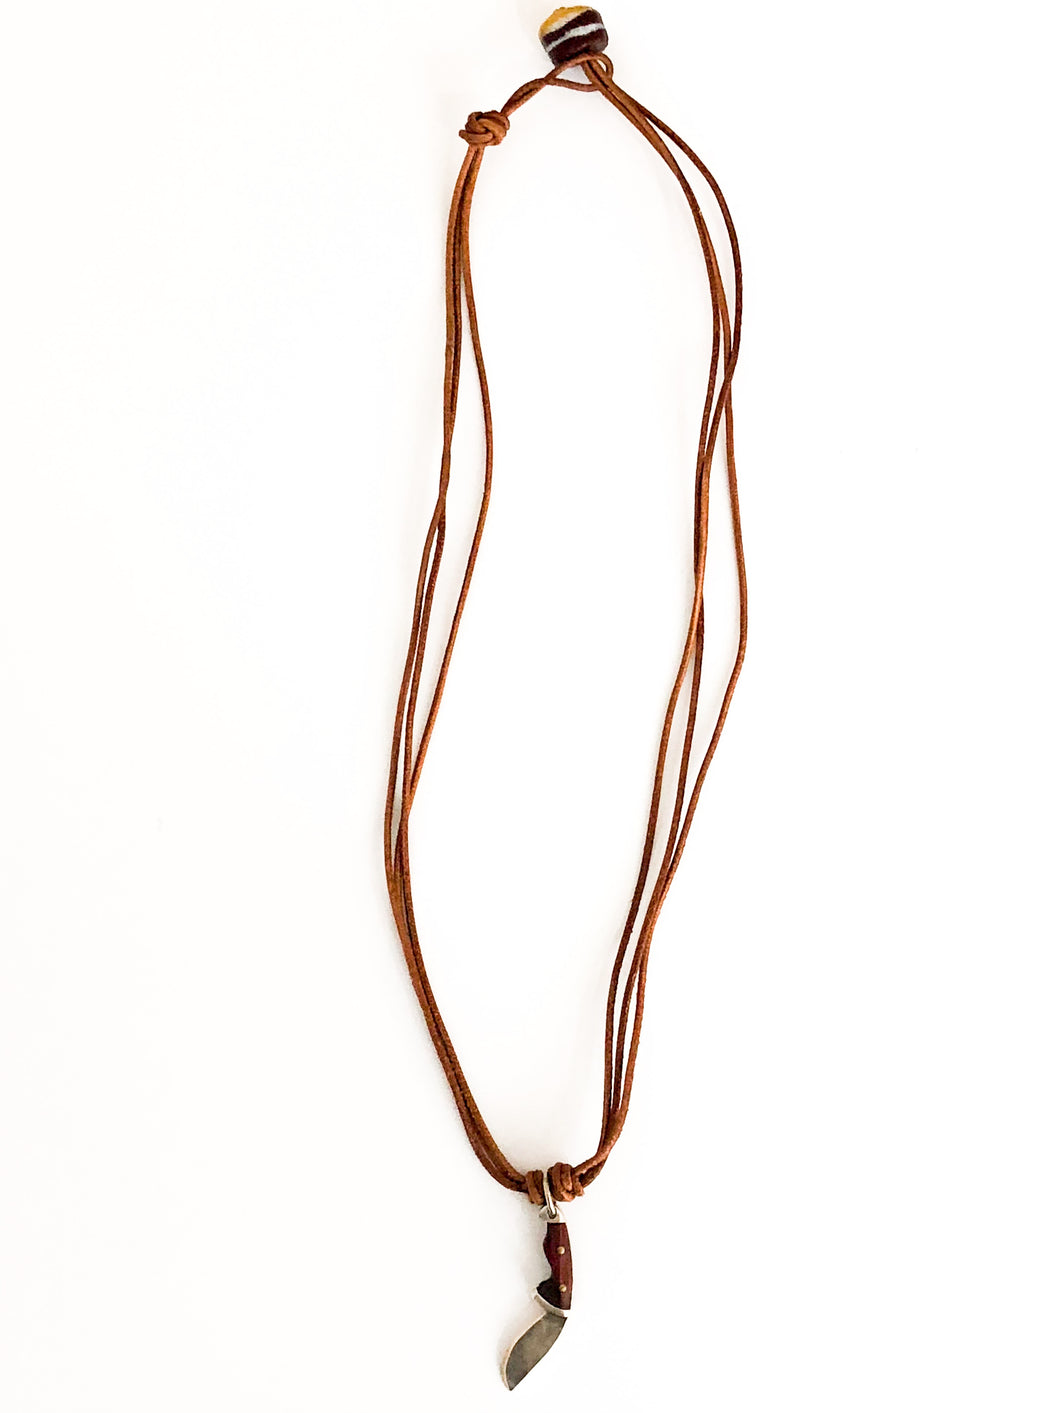 Natural Wood 'Ax' Necklace - Sufi Design